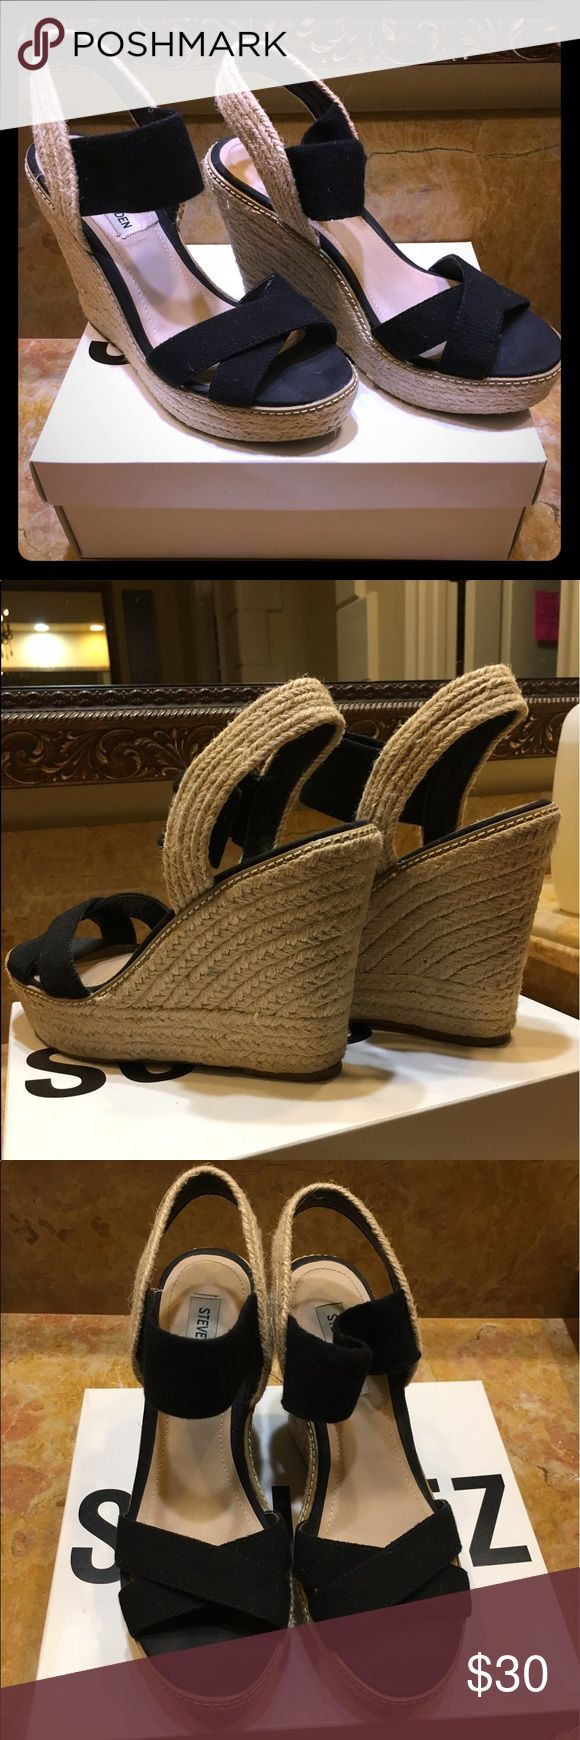 Black espadrille wedges Steve Madden black espadrille wedges.  Size 8.5 . Great condition. Heel is 3.5 inches. Steve Madden Shoes Espadrilles